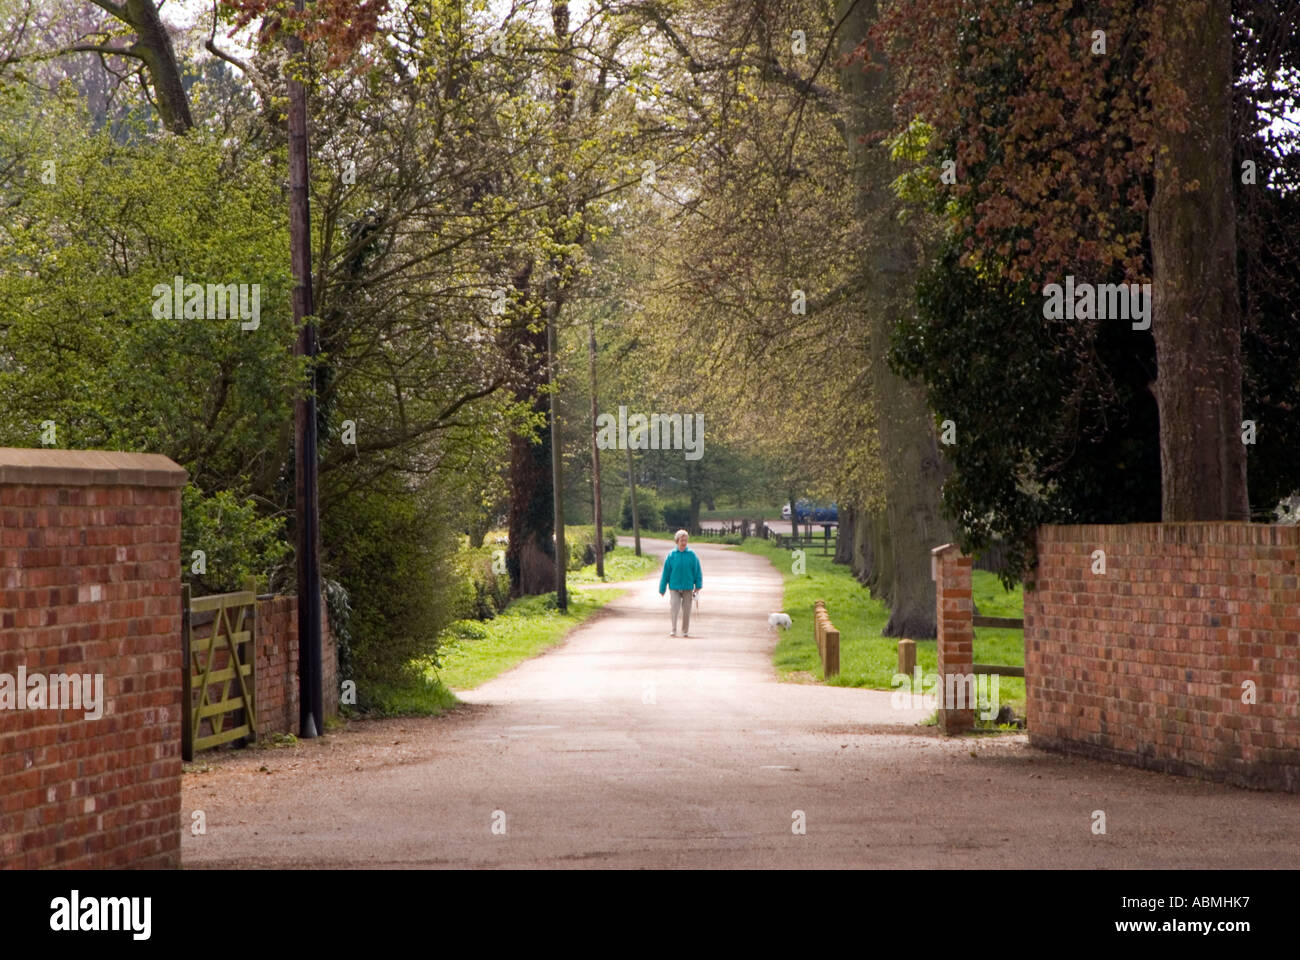 Wooded park in Milton Keynes, Buckinghamshire - Stock Image